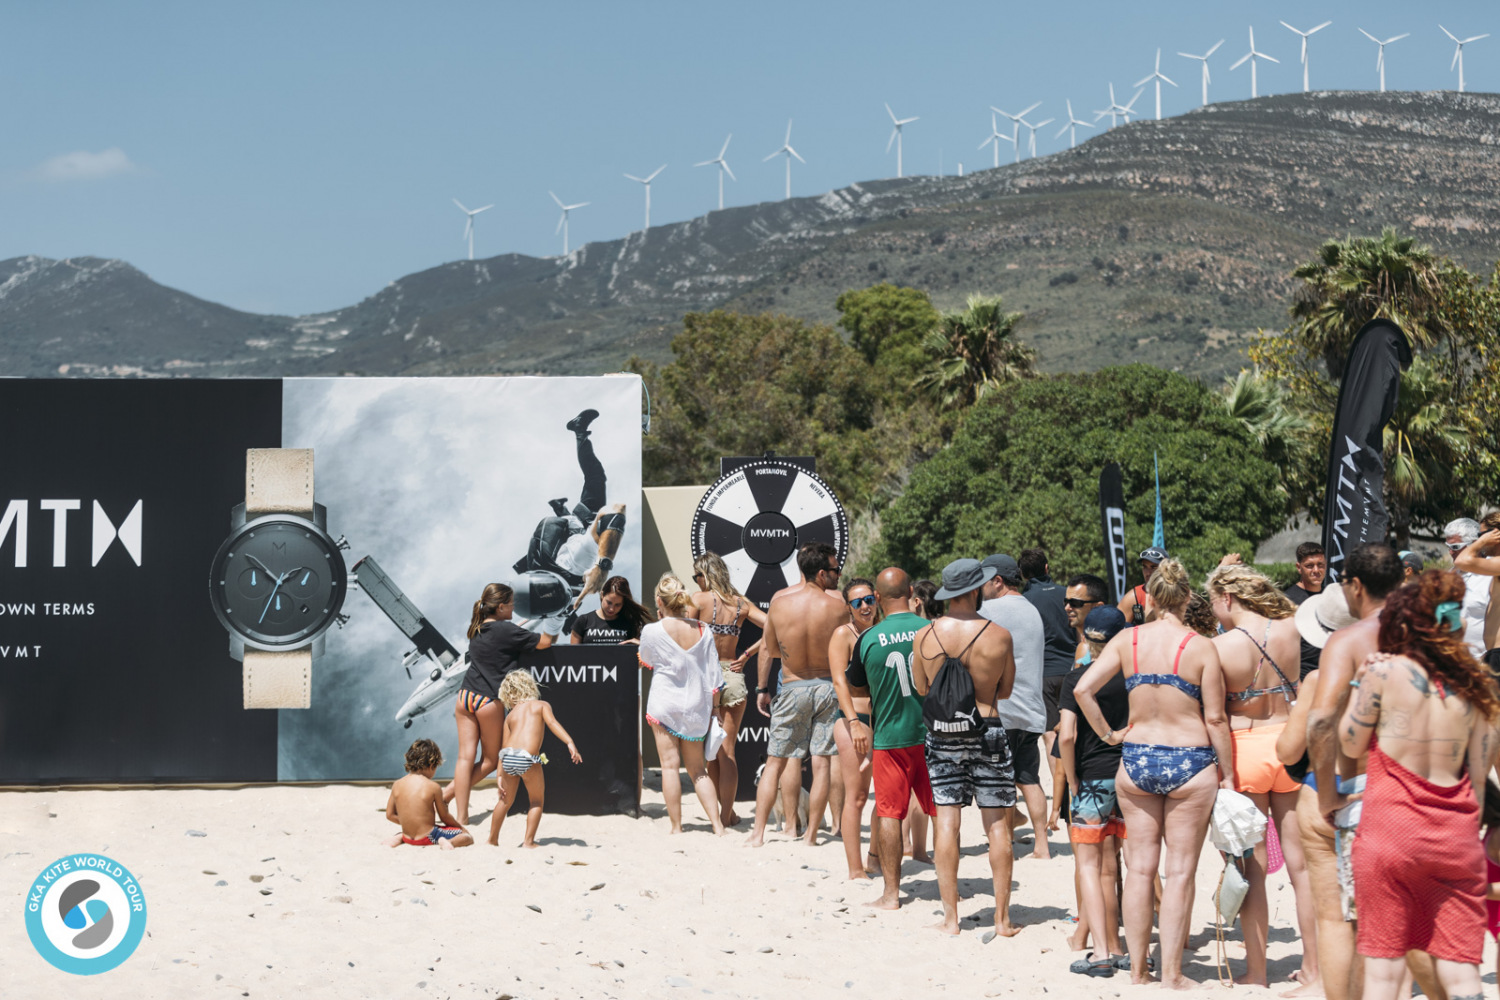 GKA_KWT_Surf_Tarifa_Ydwer_Day_02_0485